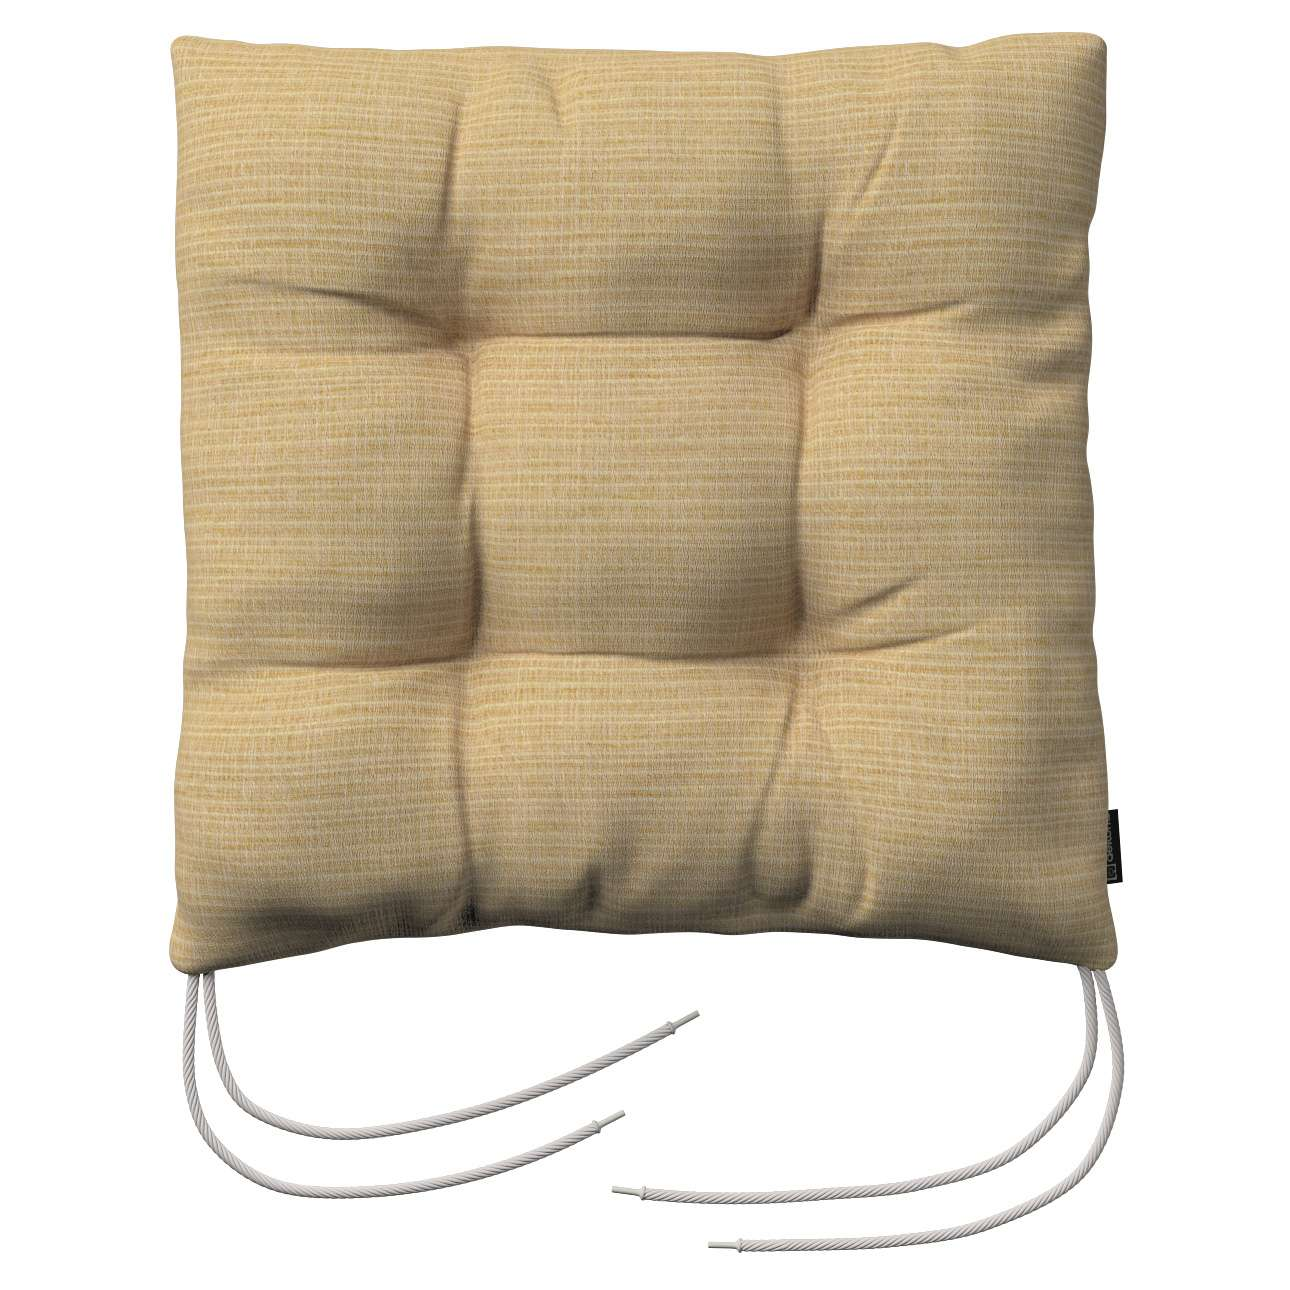 Jacek seat pad with ties 40 x 40 x 8 cm (16 x 16 x 3 inch) in collection Living, fabric: 101-14